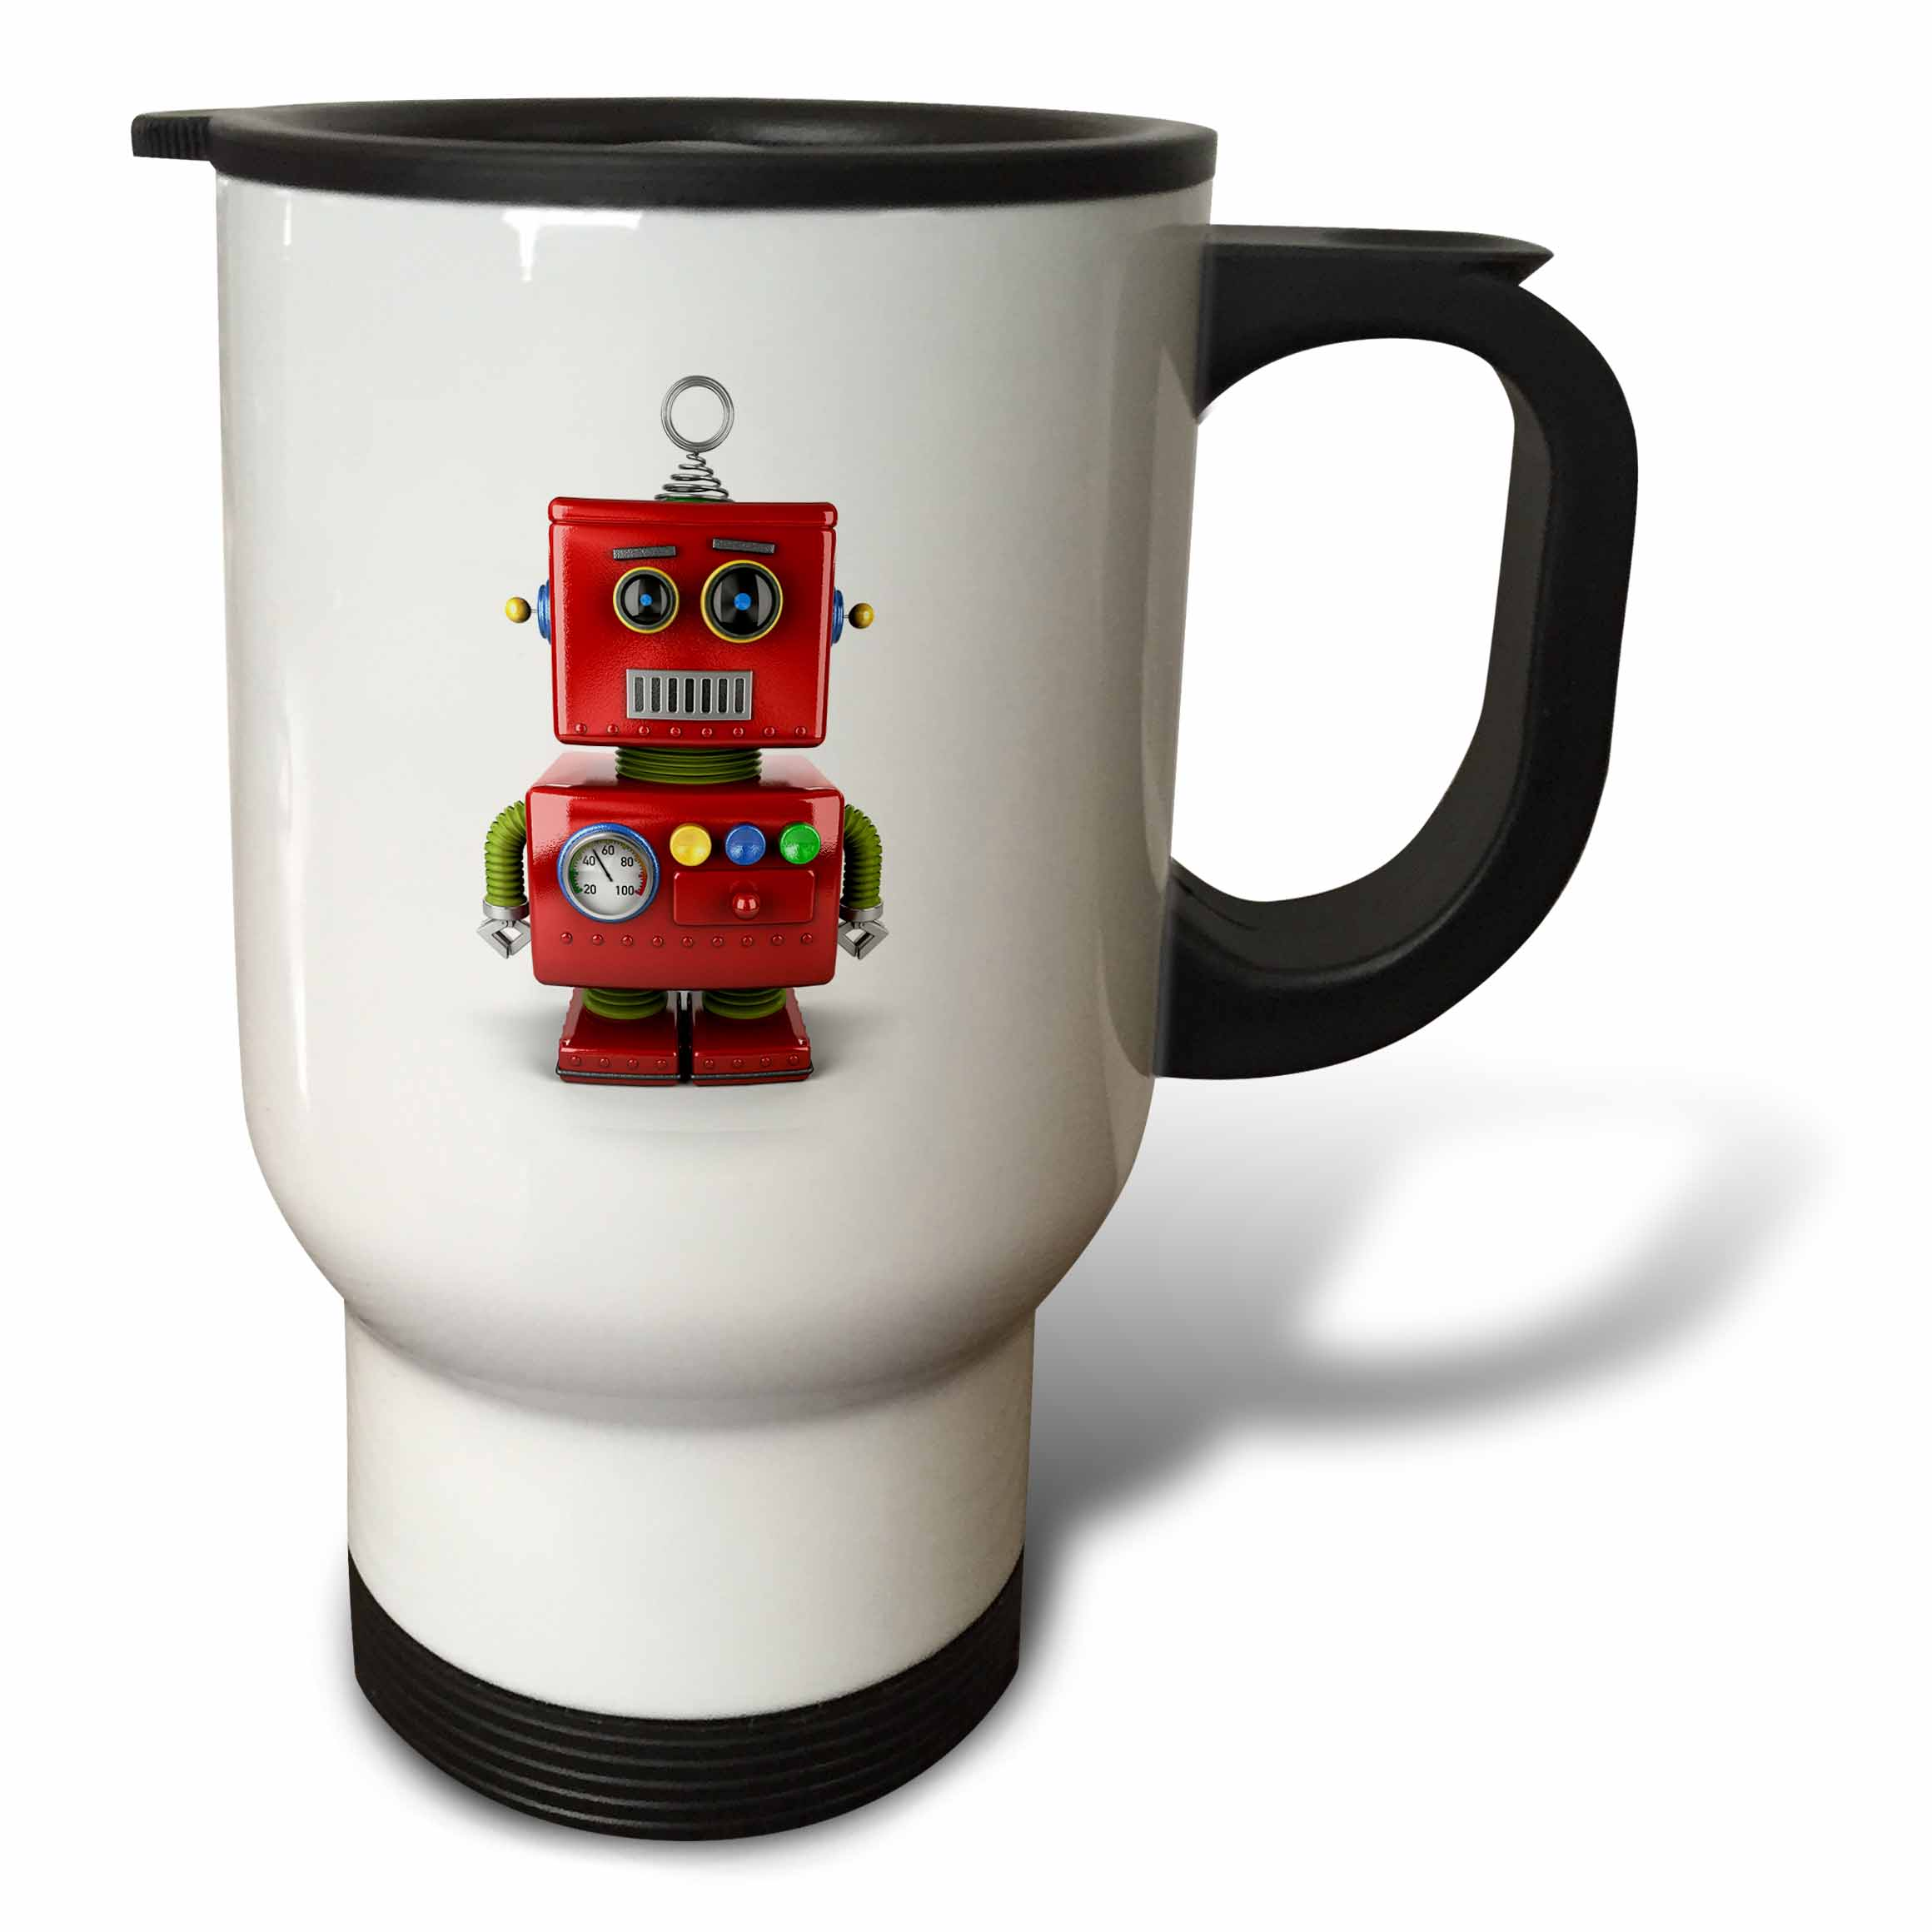 3dRose Vintage toy robot with neutral facial expression cute, Travel Mug, 14oz, Stainless Steel